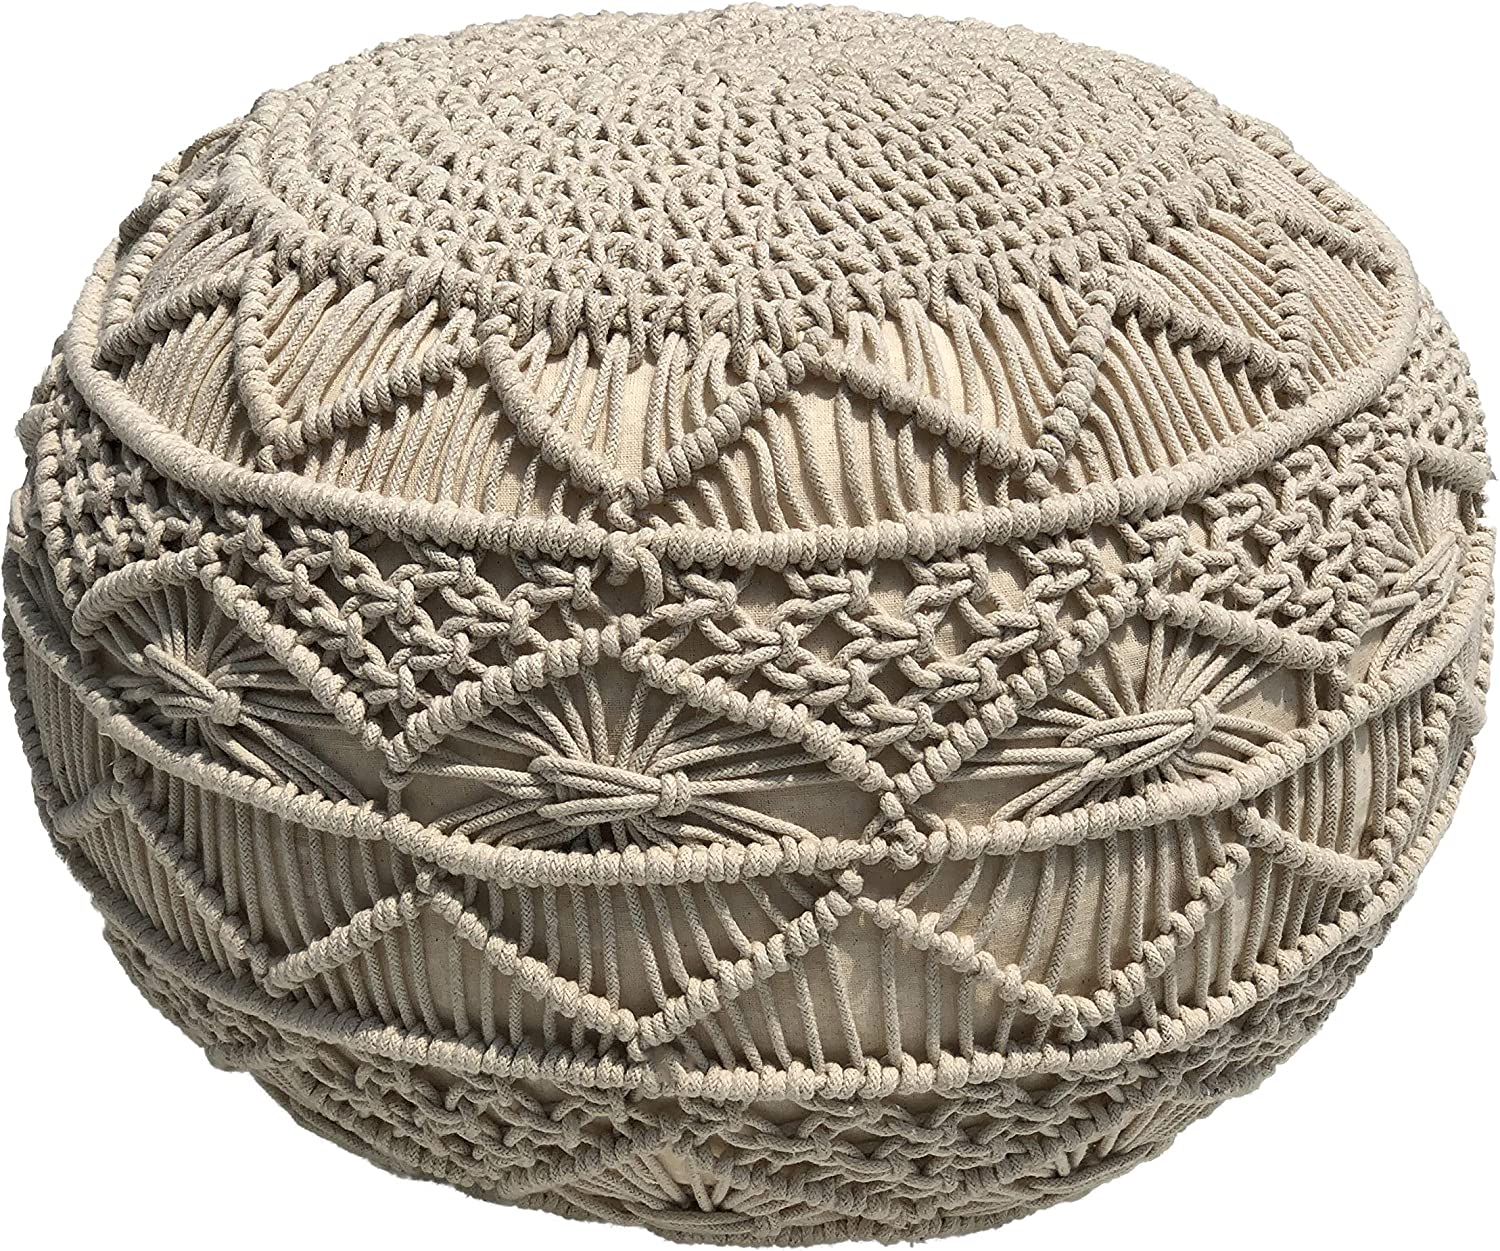 Casa Platino Truly one of a Kind Seating 20 Diameter x 14 Height 100/% Cotton Braid Cord - Floor Ottoman Brick Red Handmade /& Hand Stitched Hand Knitted Cable Style Dori Pouf